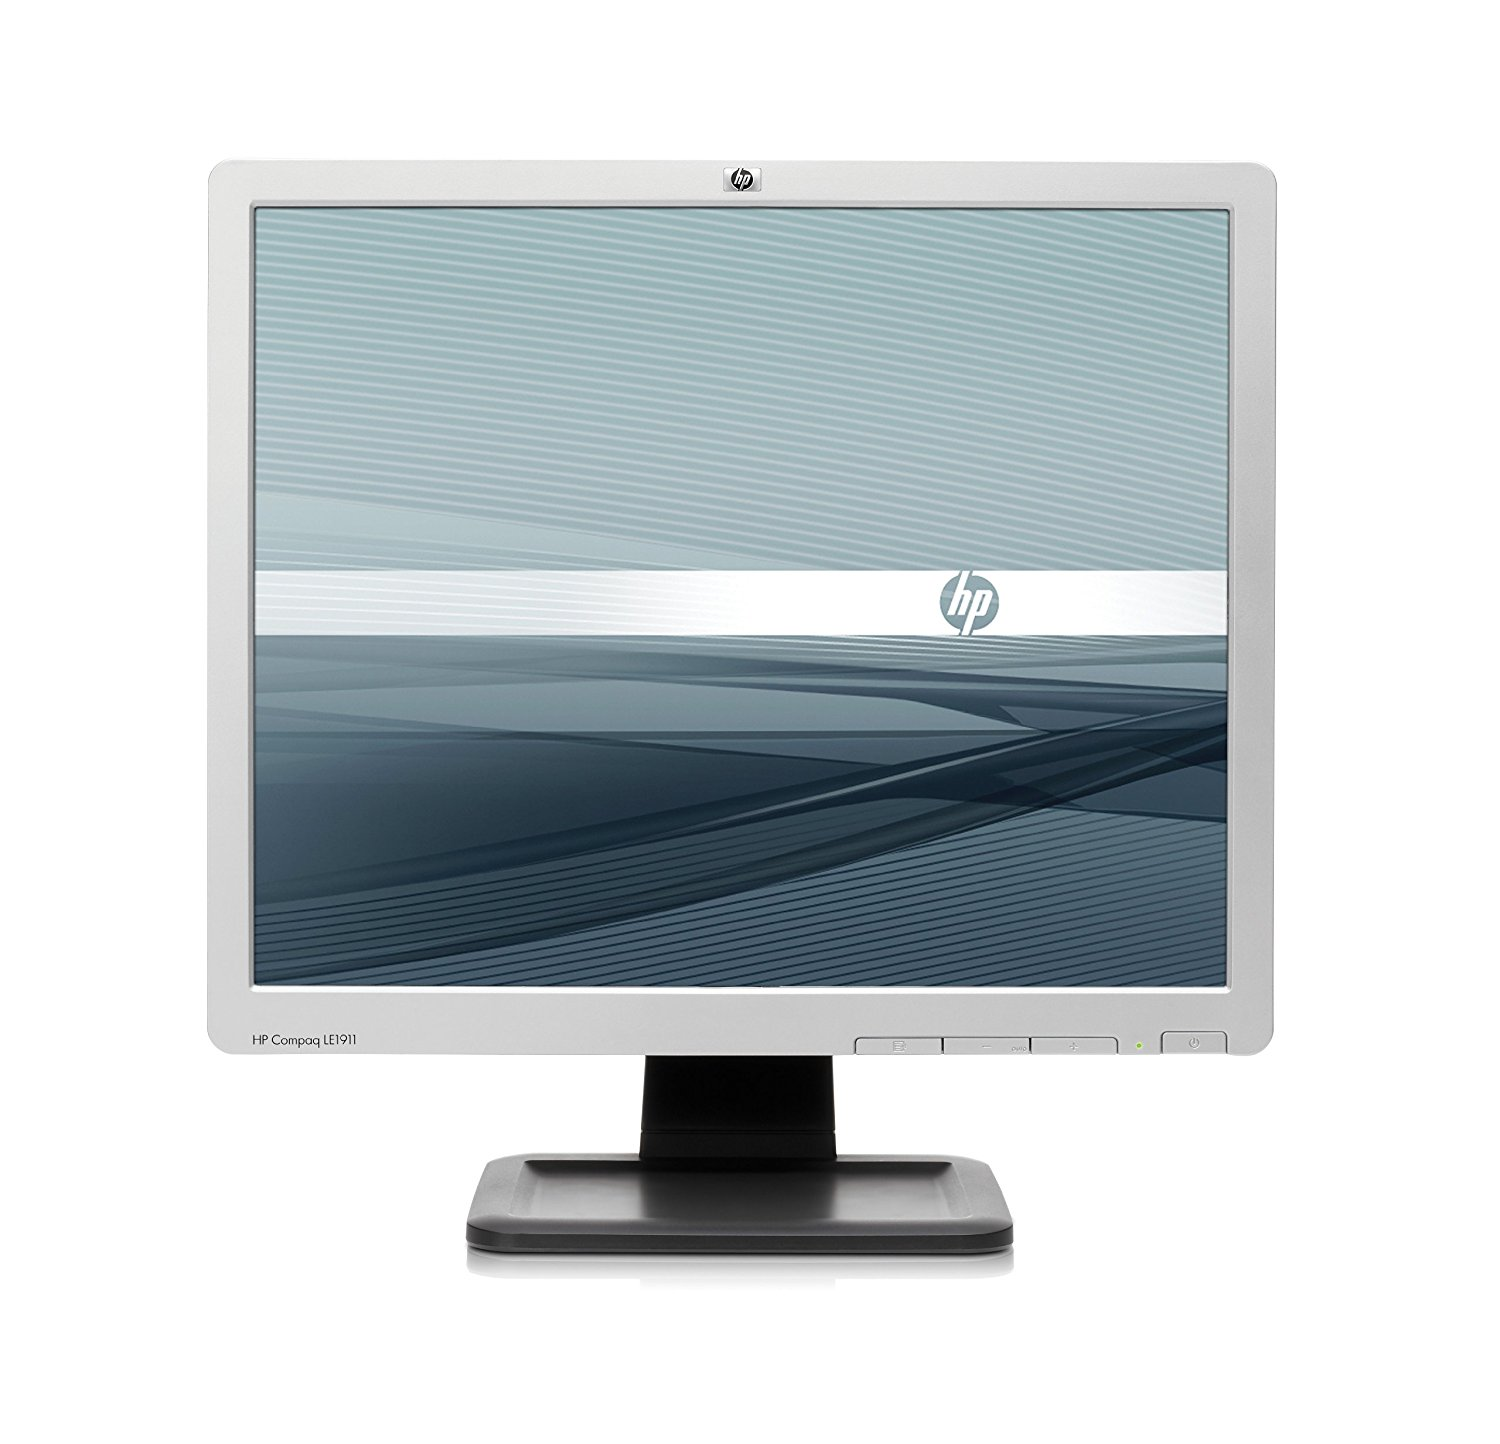 Cheap Hp Monitor 19, find Hp Monitor 19 deals on line at Alibaba com